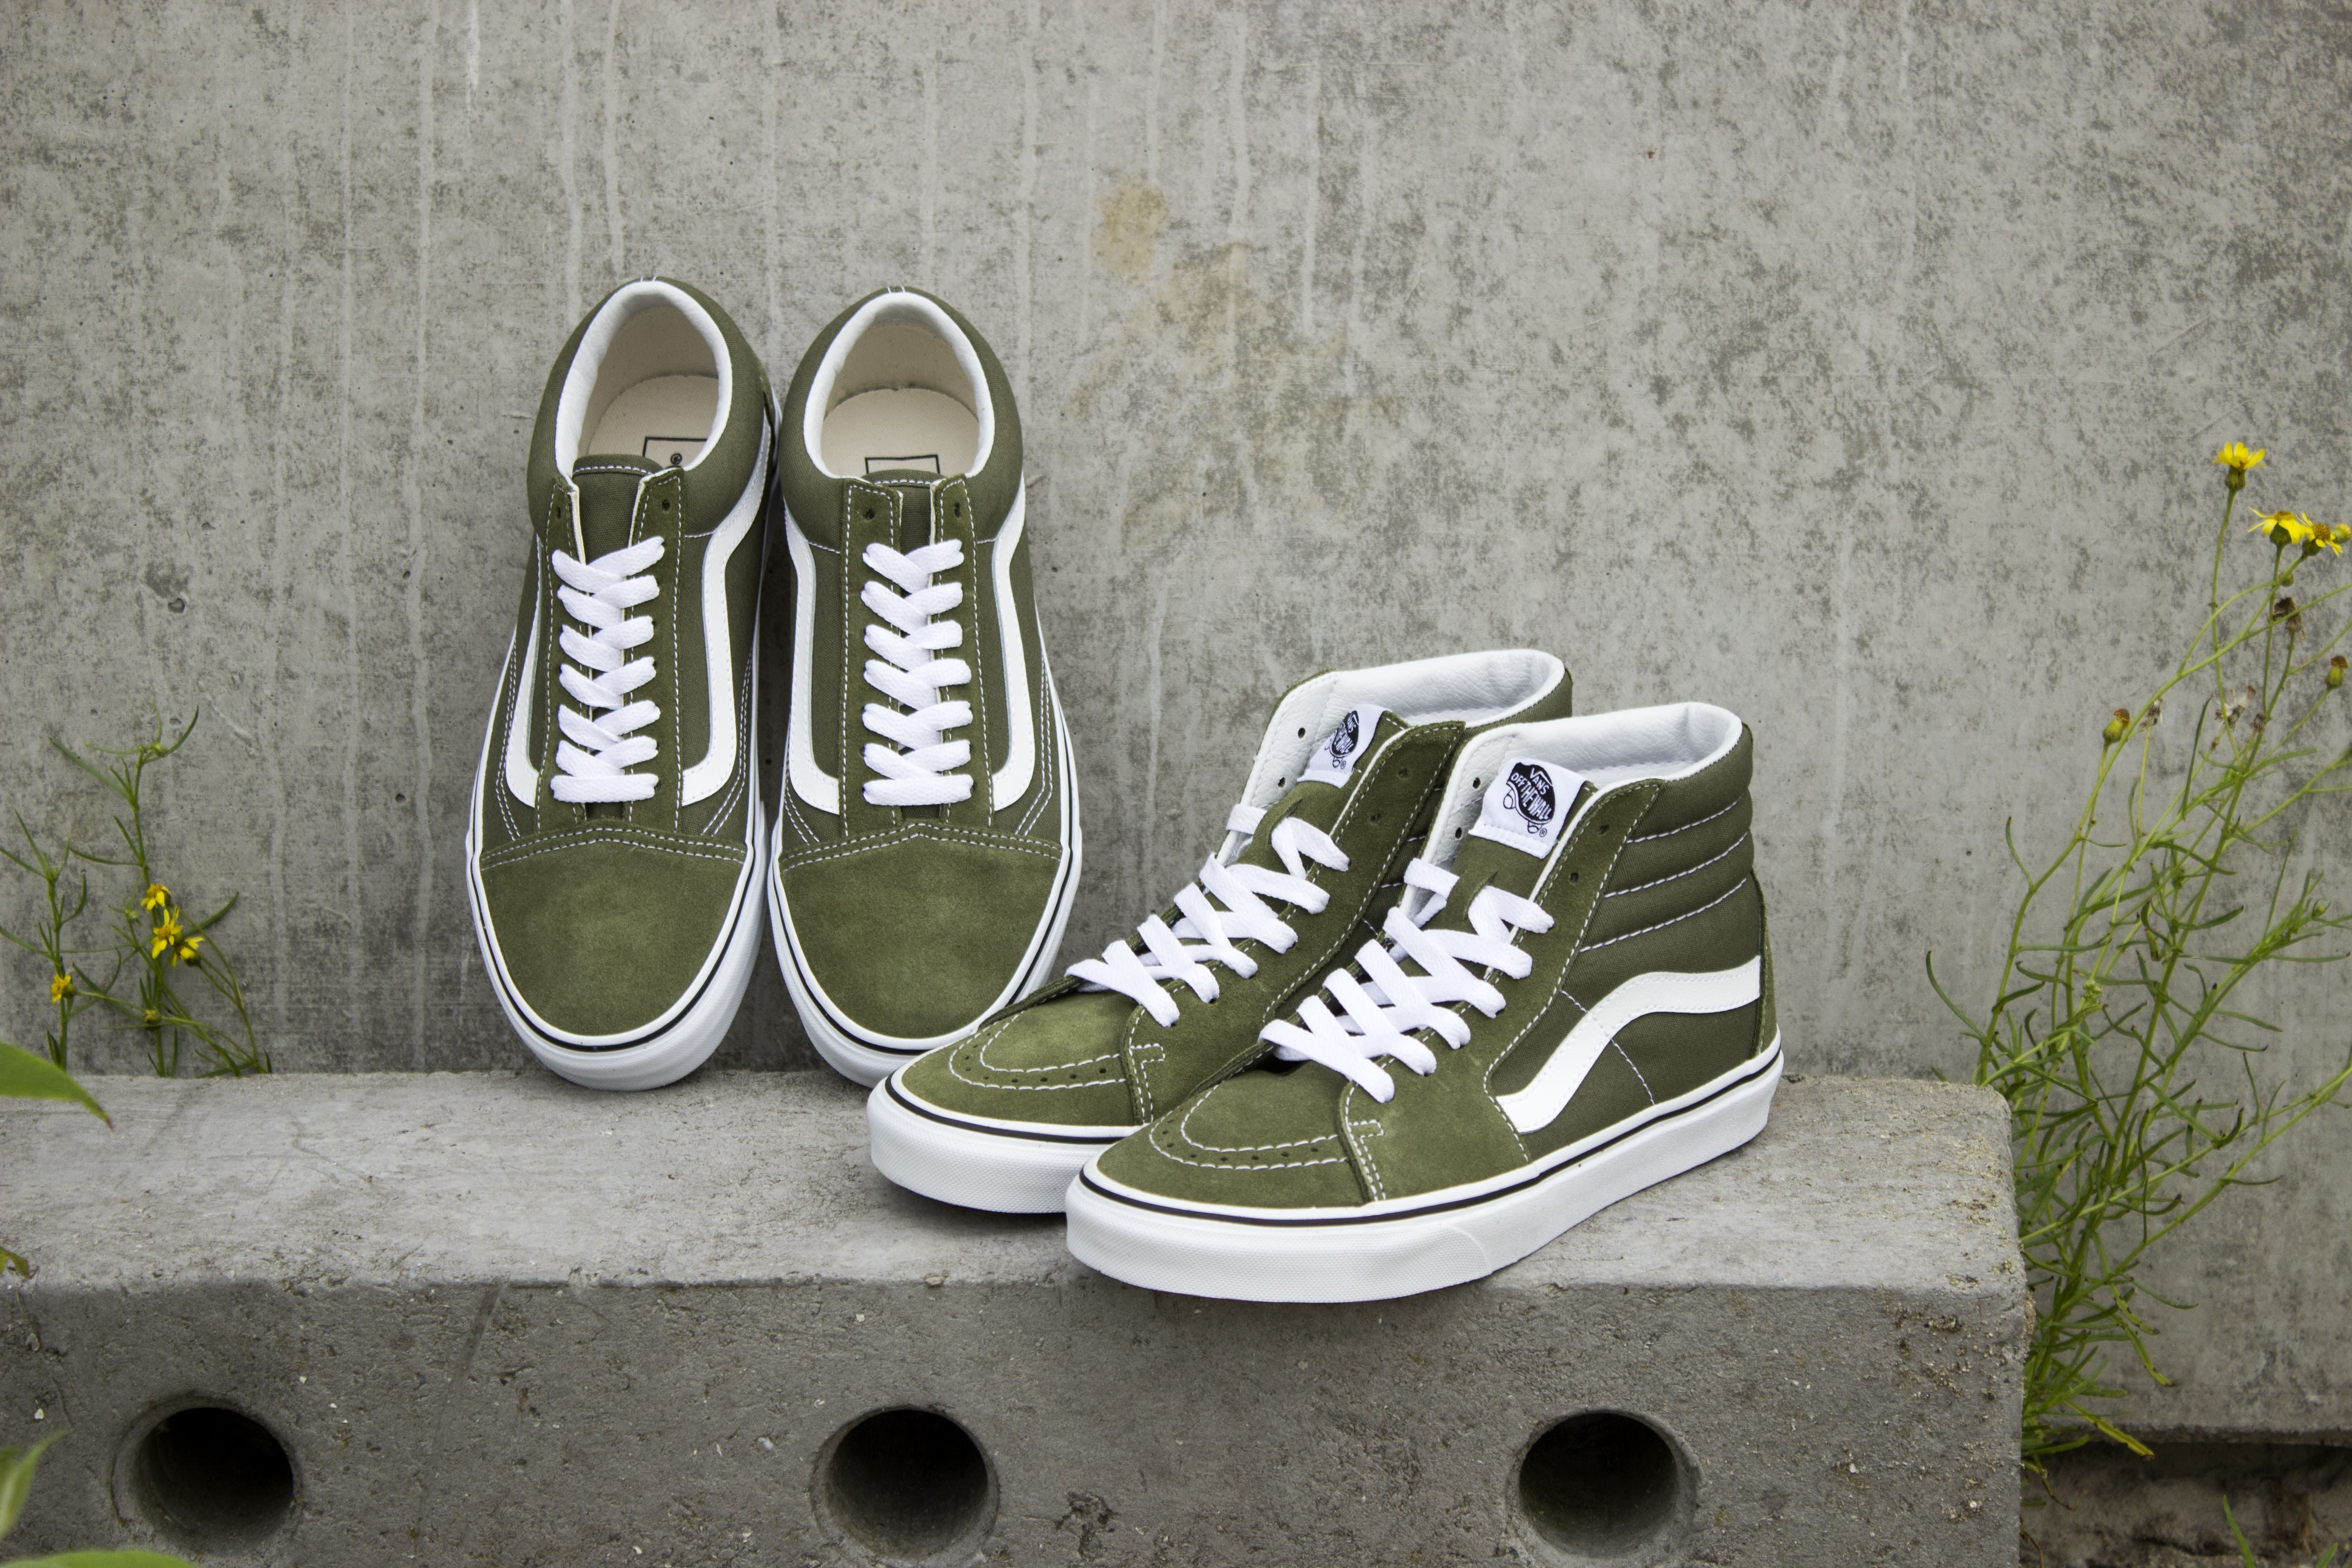 Vans Sk8-Hi | Vans Old skool | Winter Moss | Vans sneakers